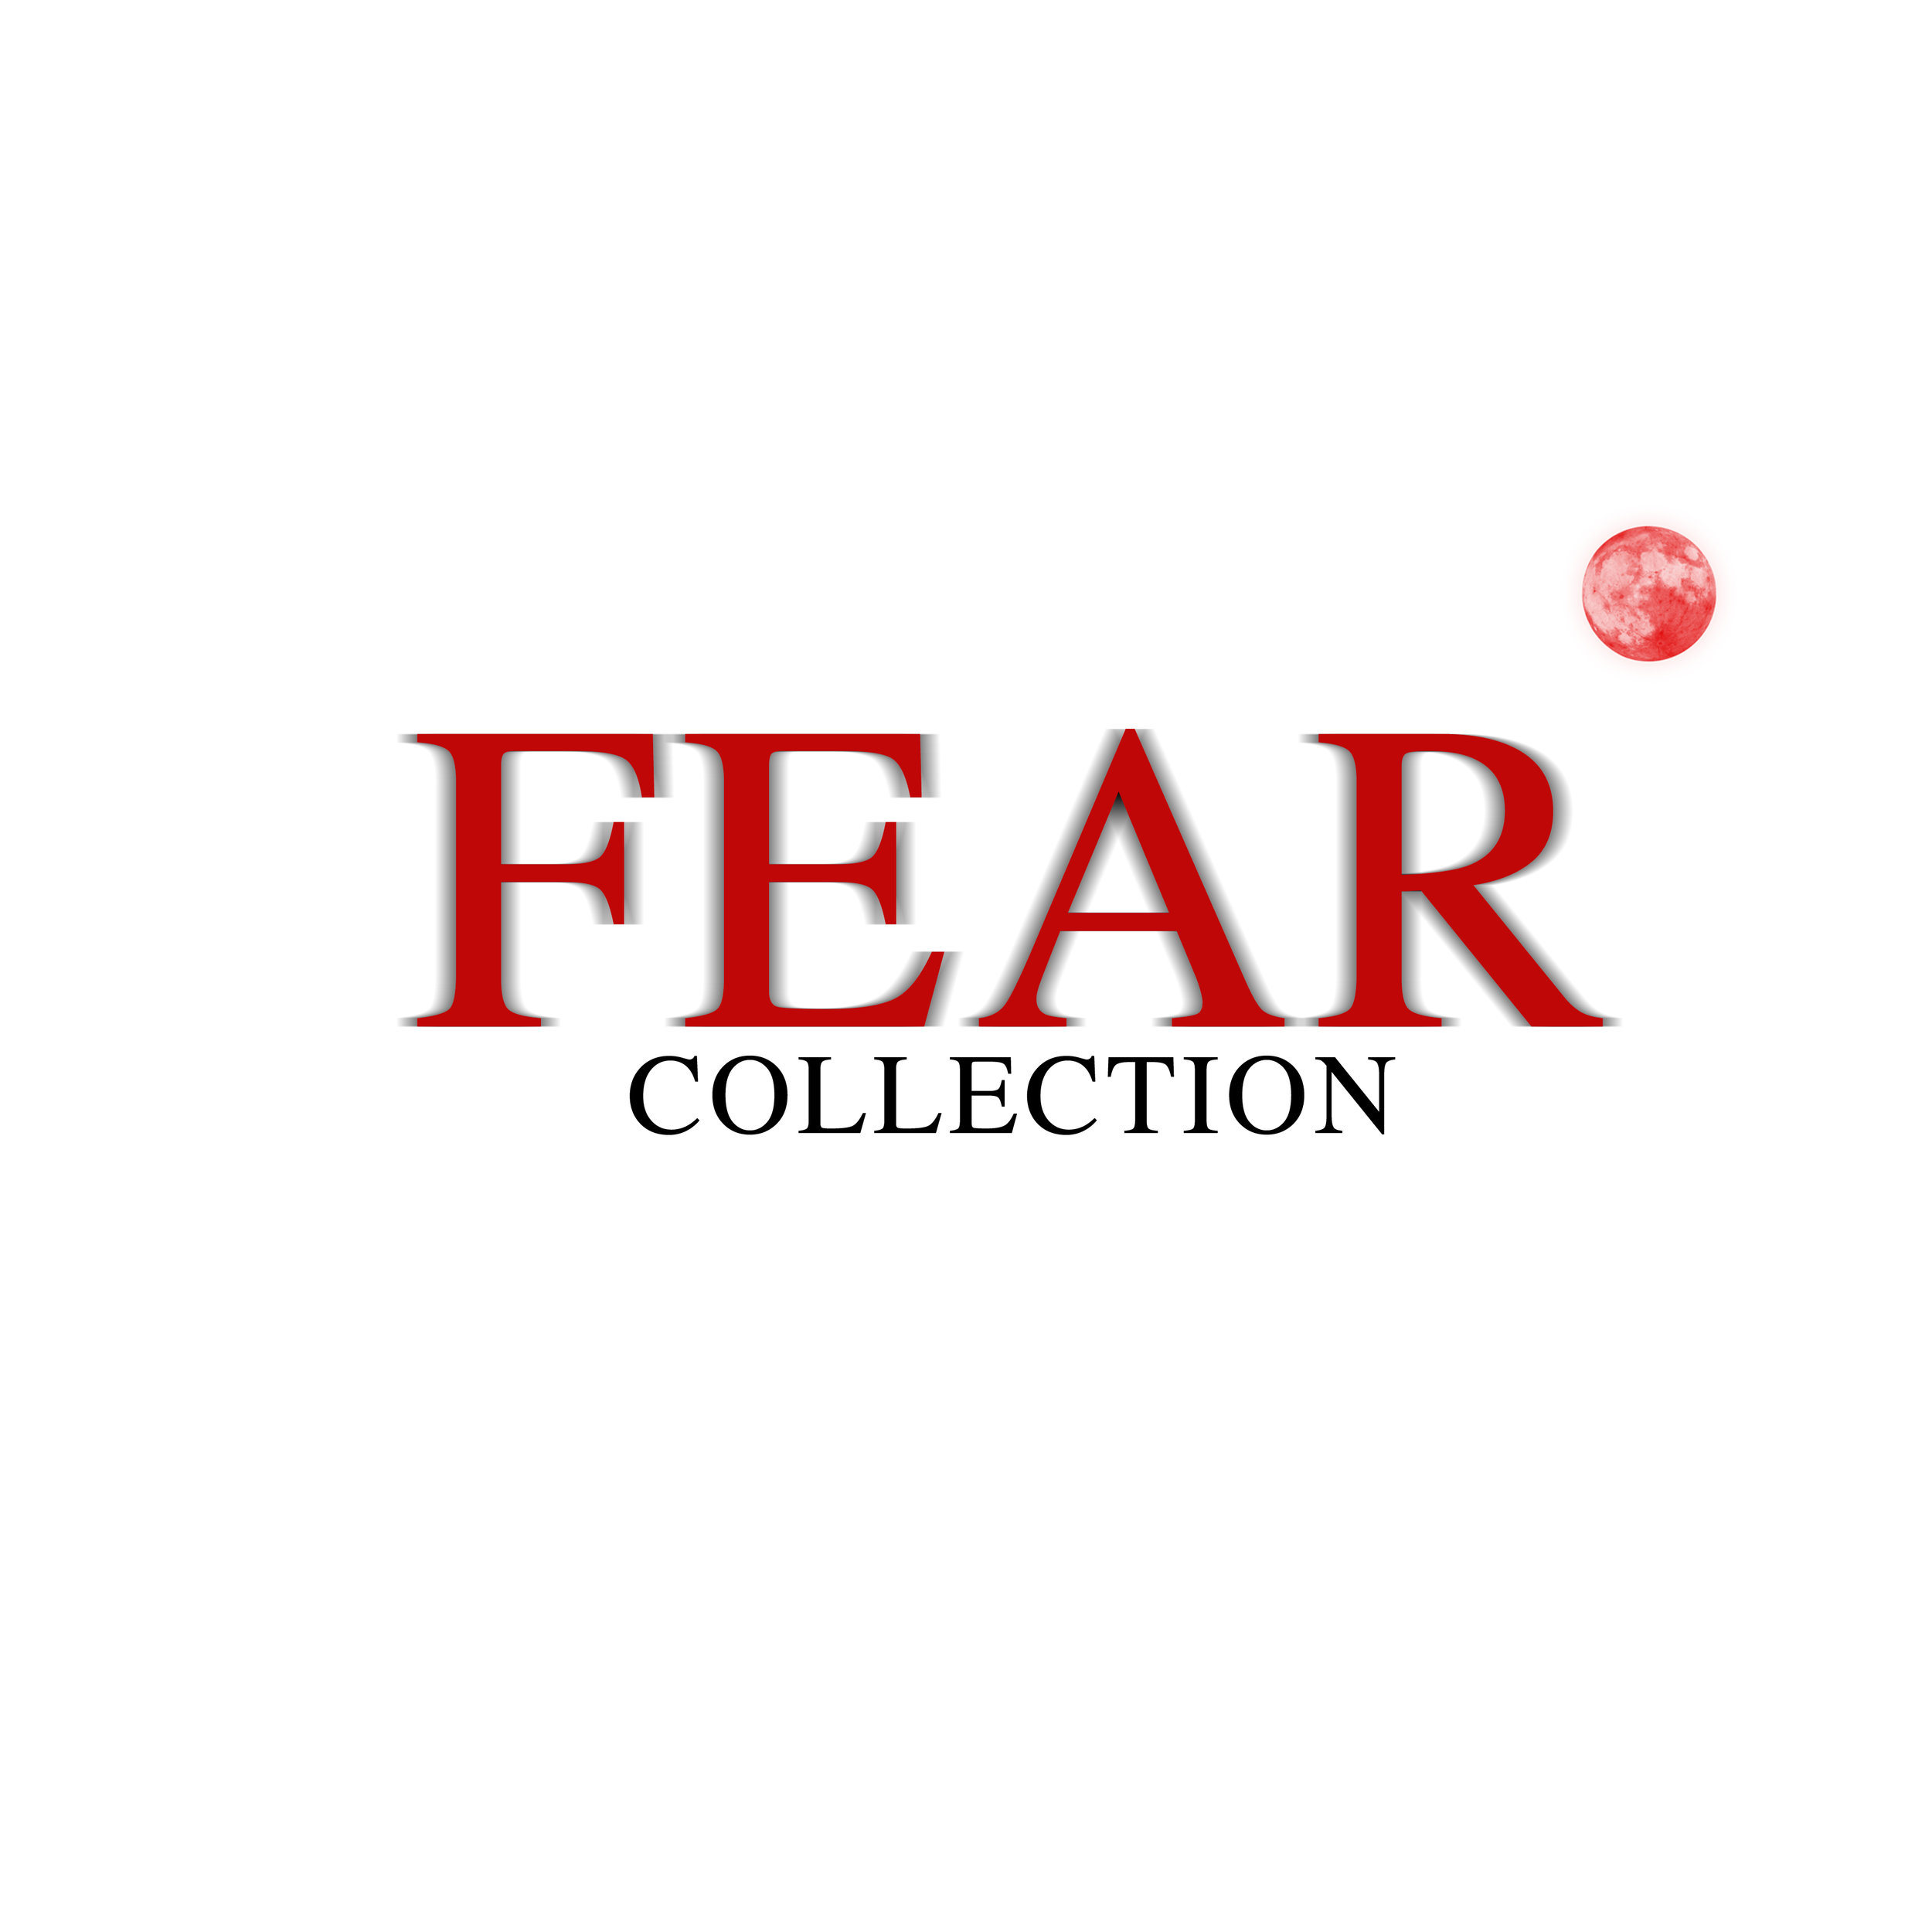 Fear Collection.jpg